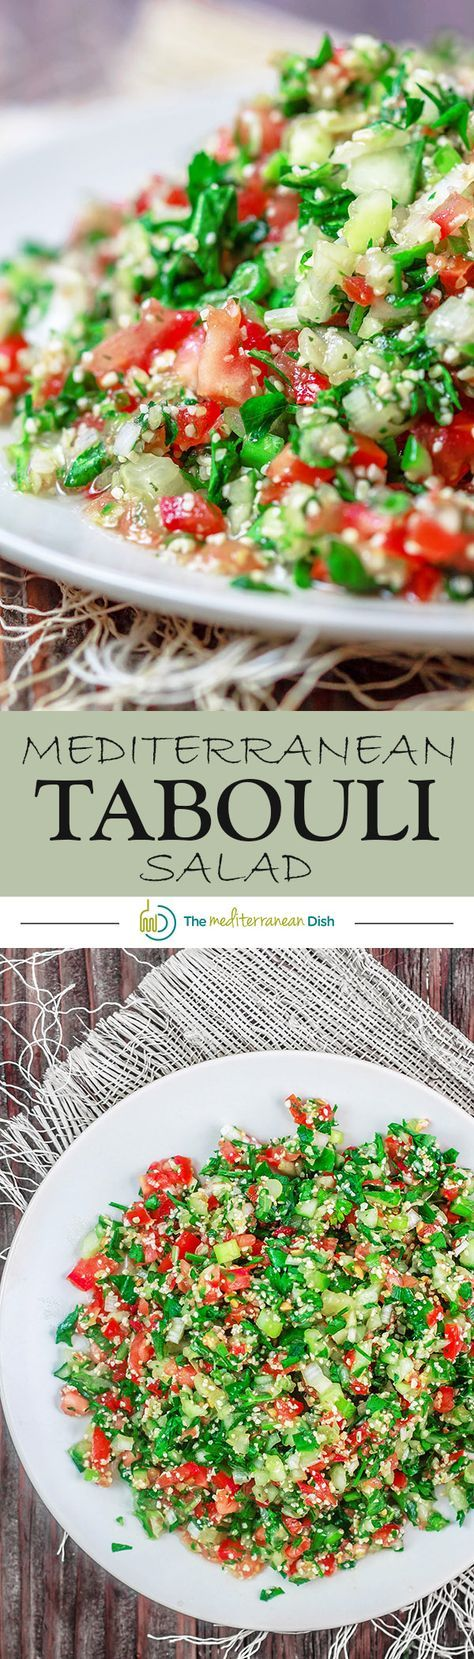 Tabouli Recipe (Tabbouleh) | The Mediterranean Dish. Authentic Middle Eastern tabouli salad with fresh parsley, mint, bulgur, finely chopped vegetables and a simple citrus dressing. See the step-by-step tutorial at The Mediterranean Dish food blog.